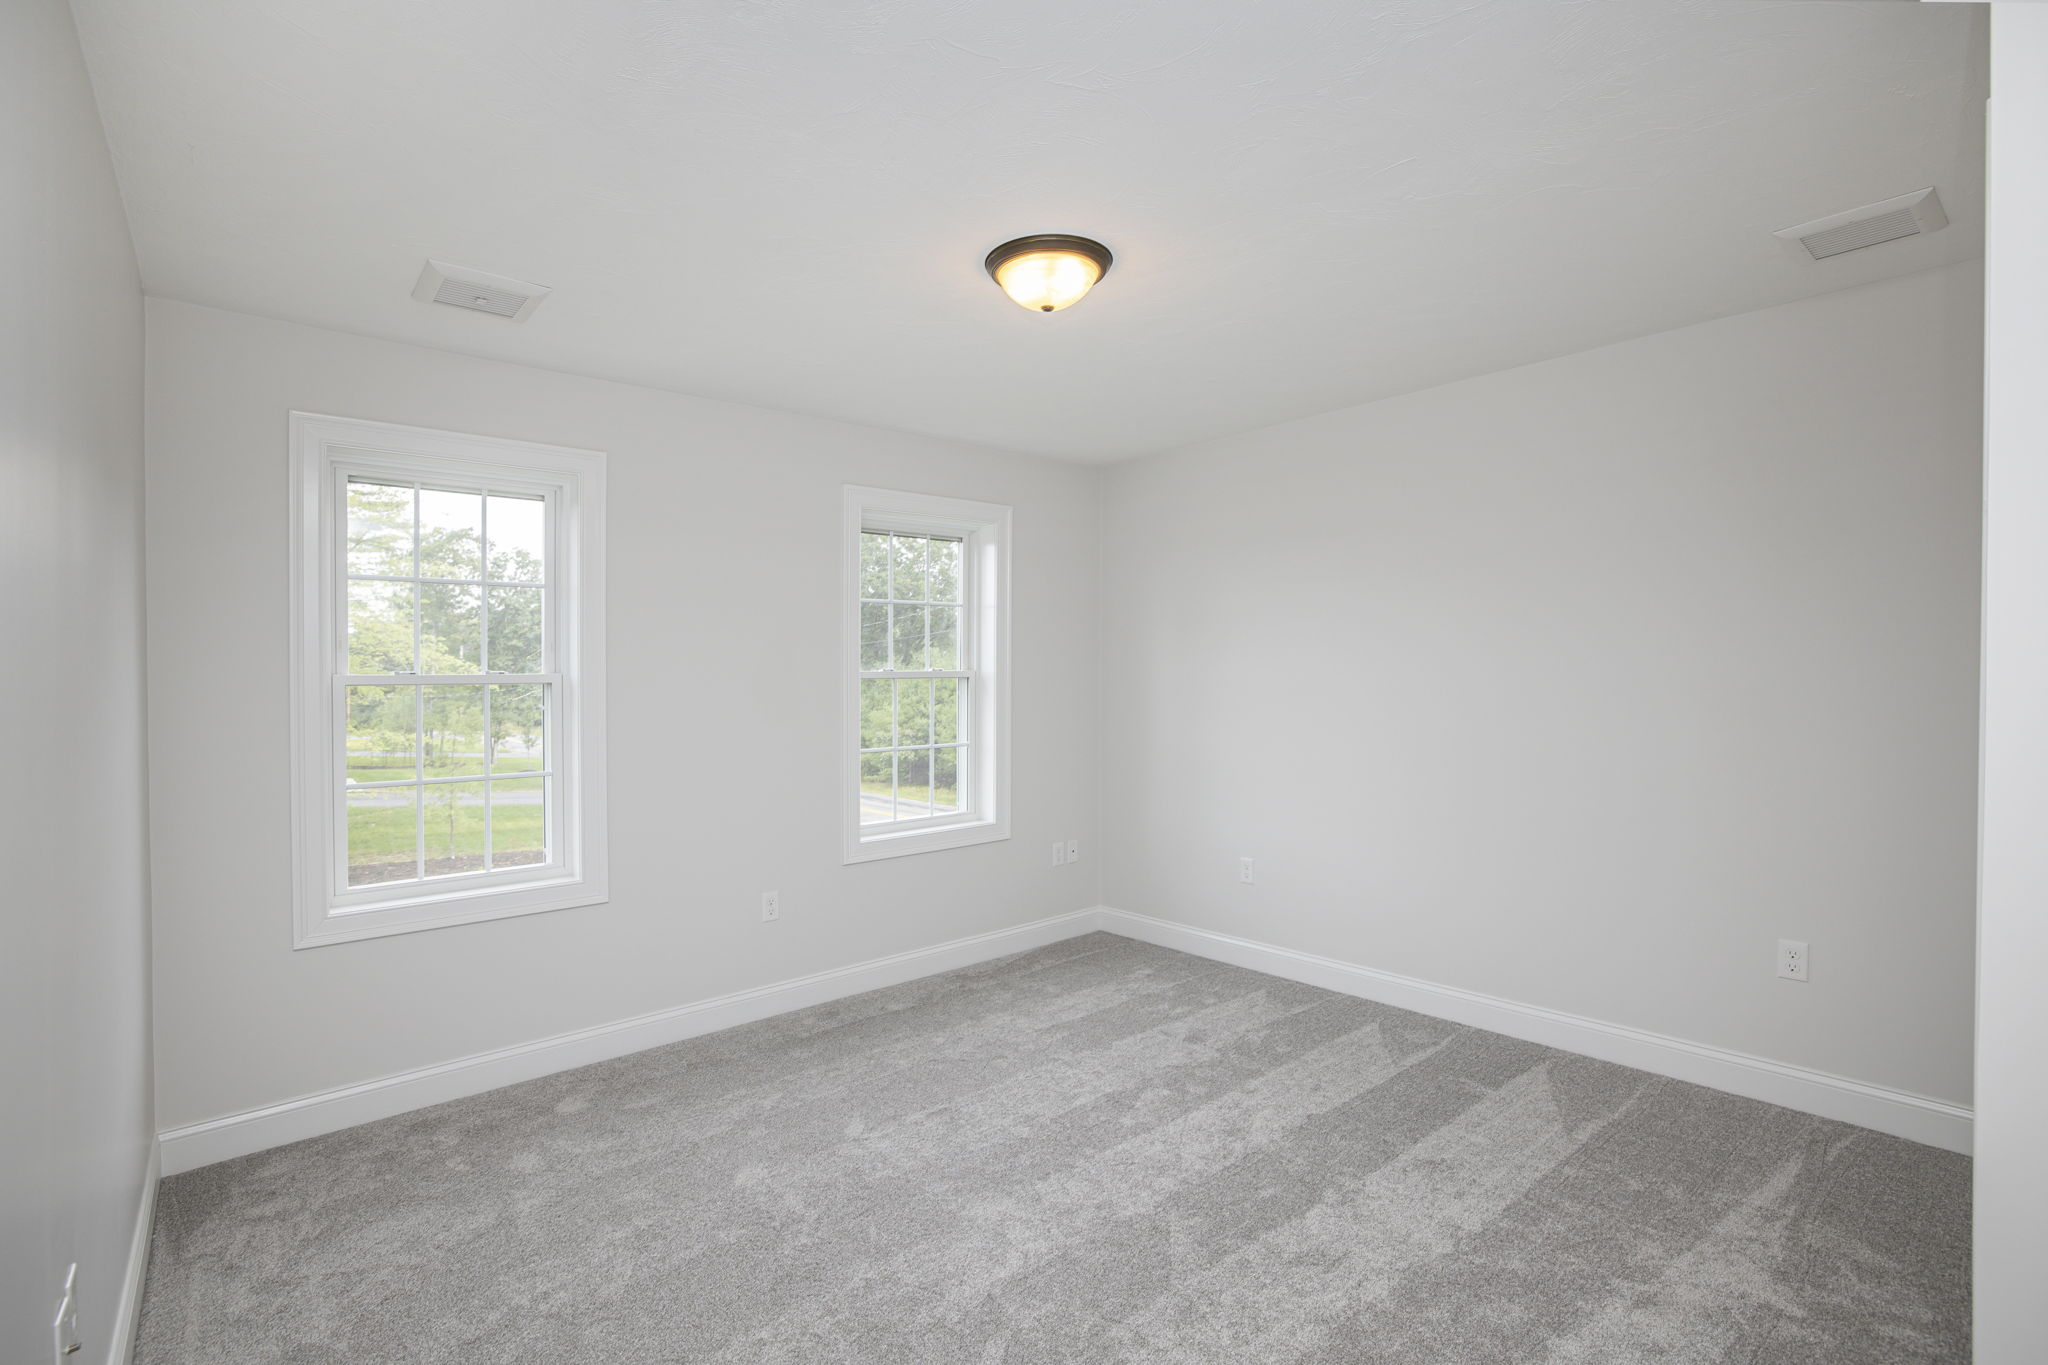 35-web-or-mls-115A7653